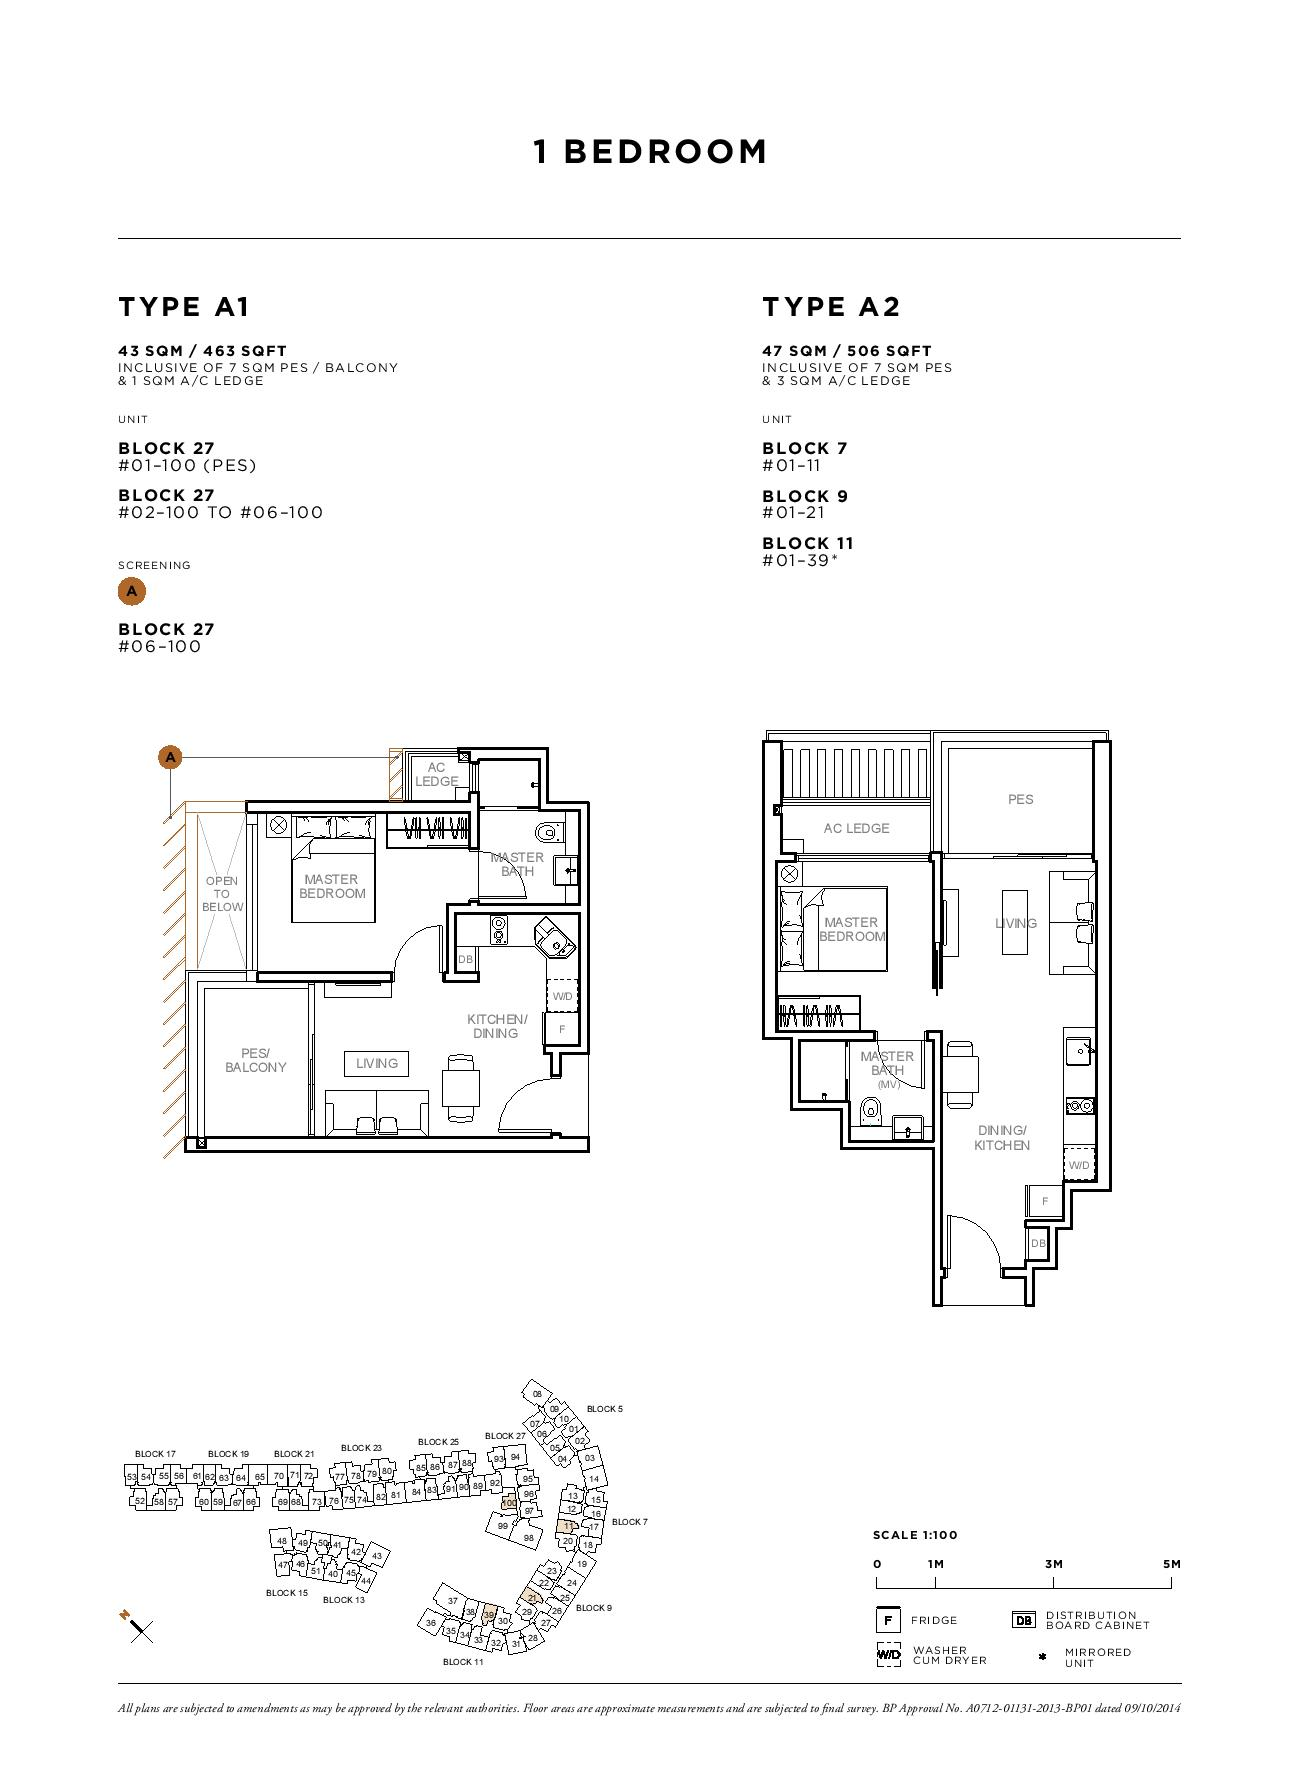 Sophia Hills 1 Bedroom Type A1, A2 Floor Plans